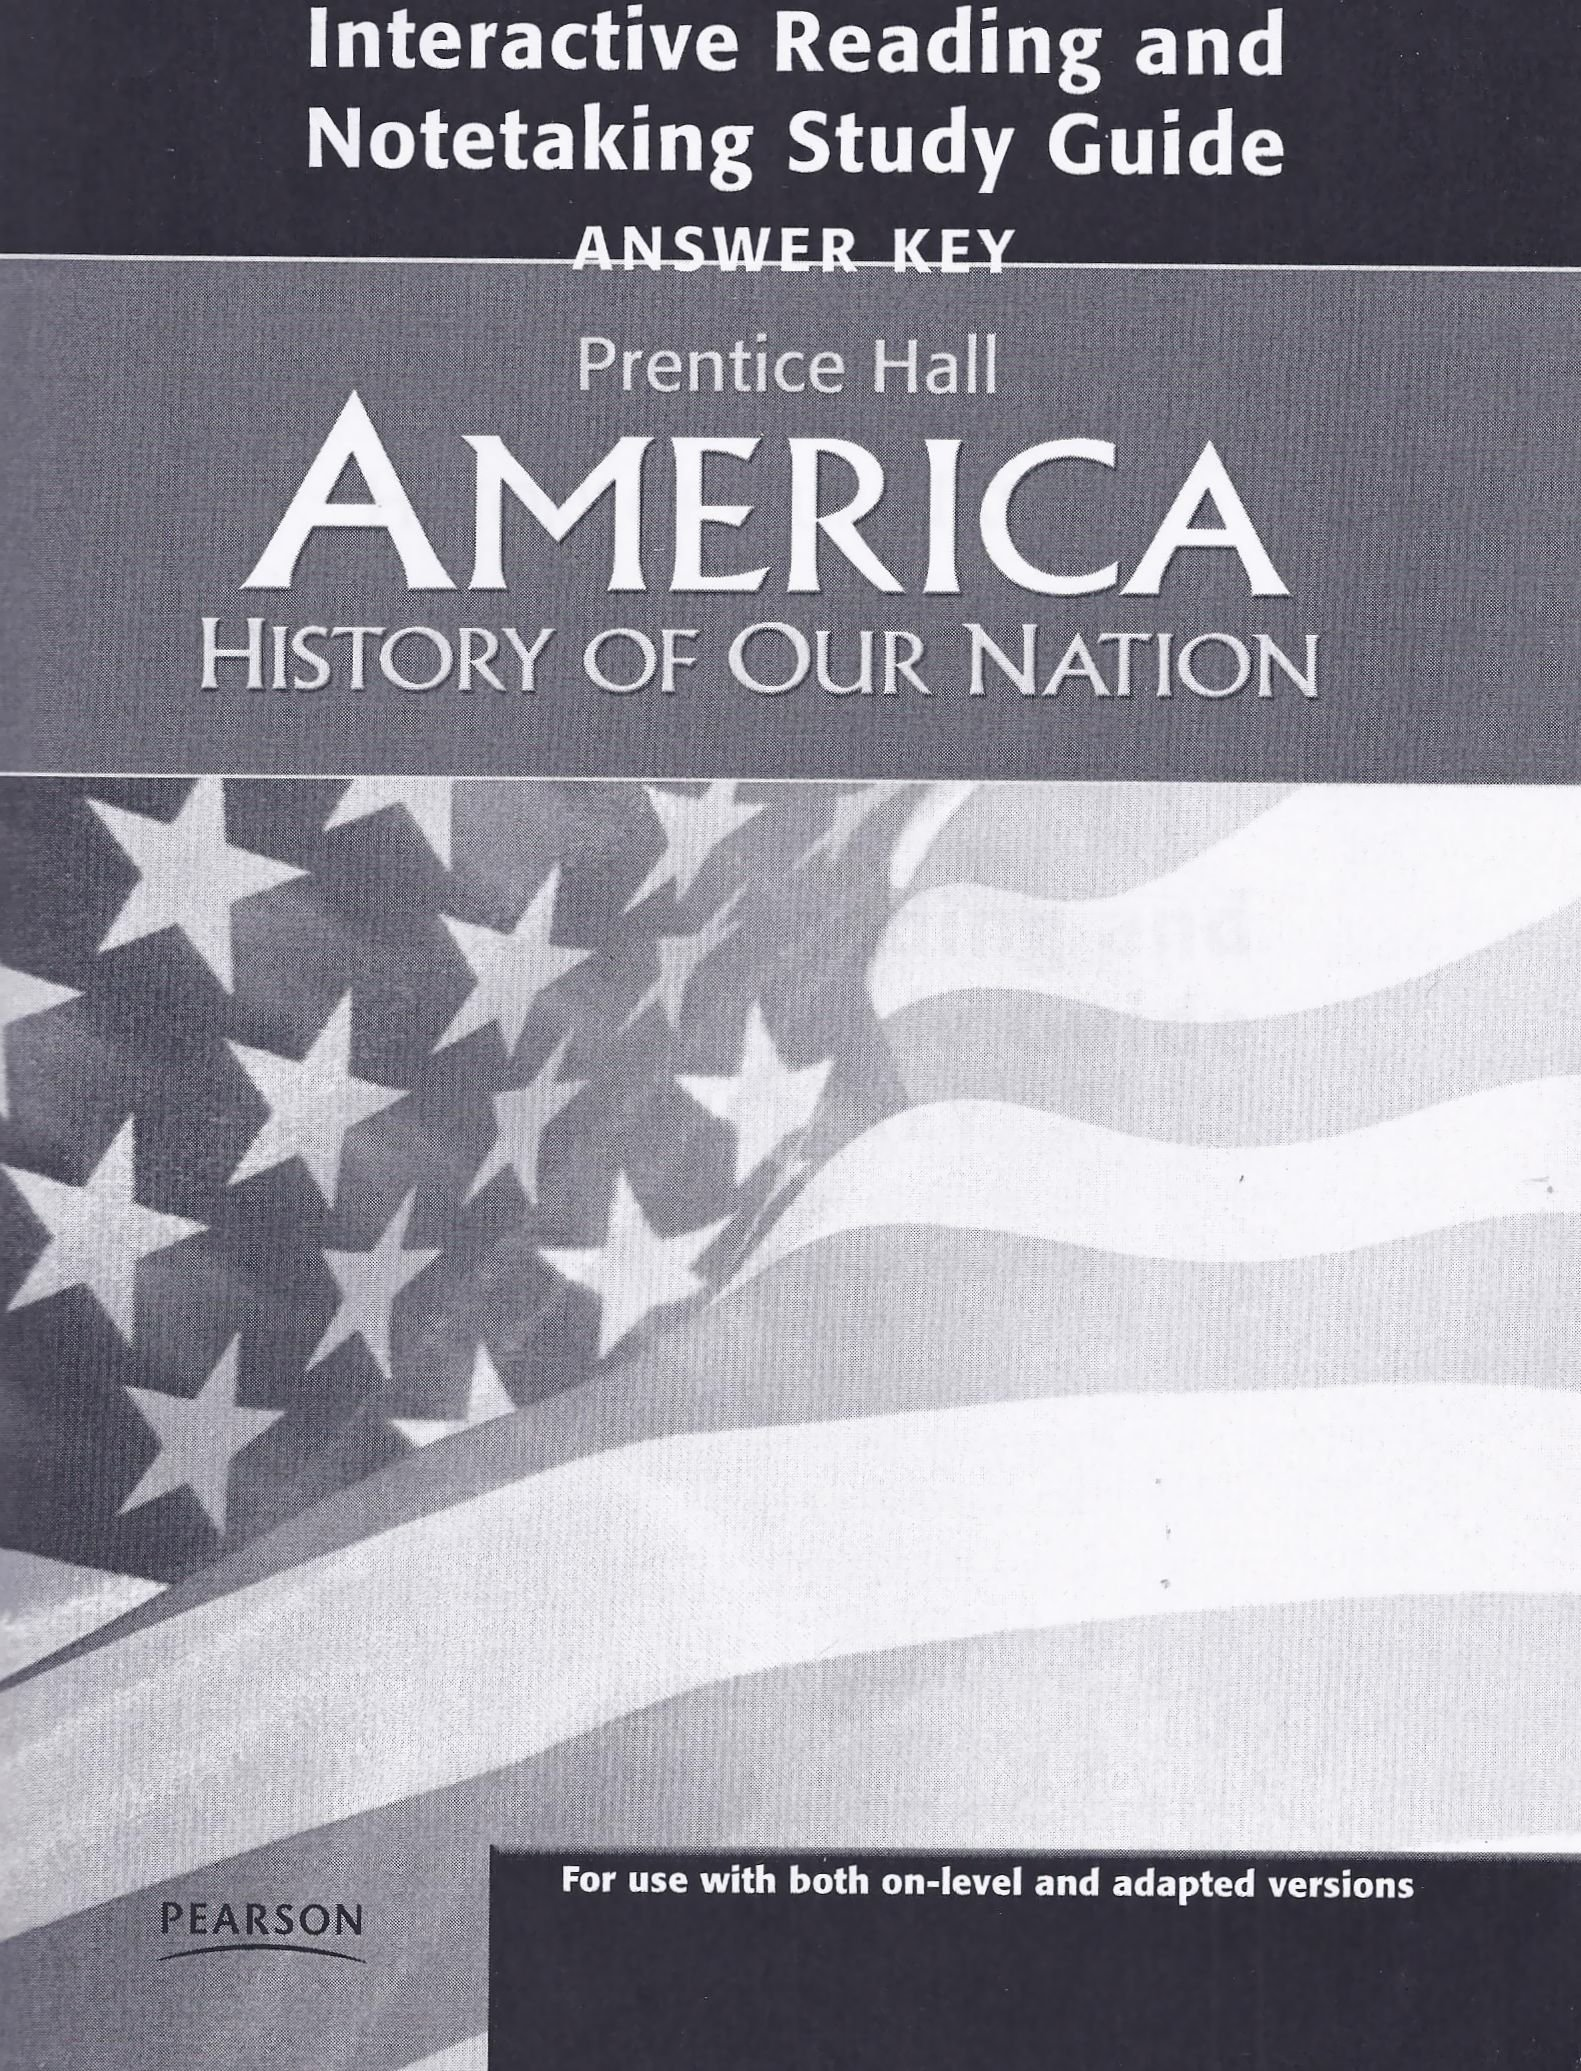 Answer Key, America: History of Our Nation, Interactive Reading and Notetaking  Study Guide: Pearson: 9780132516976: Amazon.com: Books